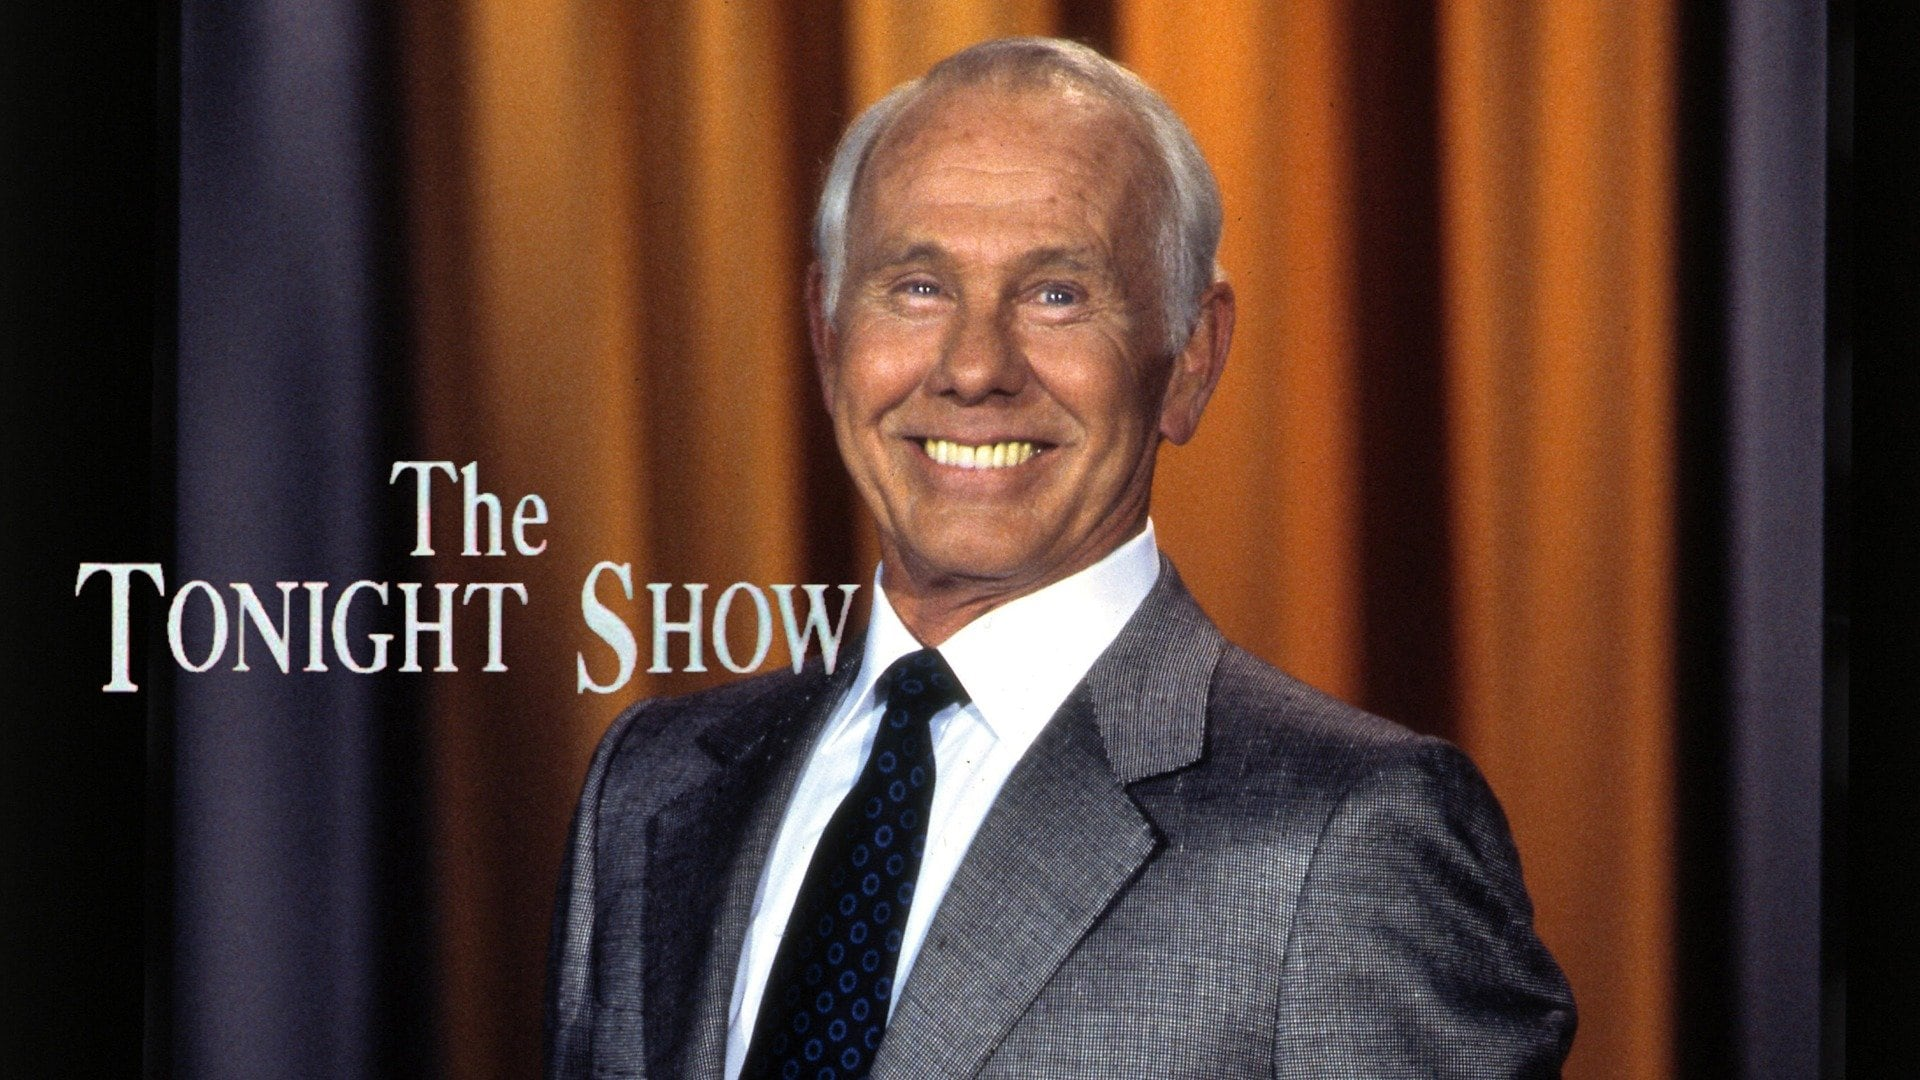 The Johnny Carson Show: The Best Of The Mighty Carson Art Players (6/1/90)